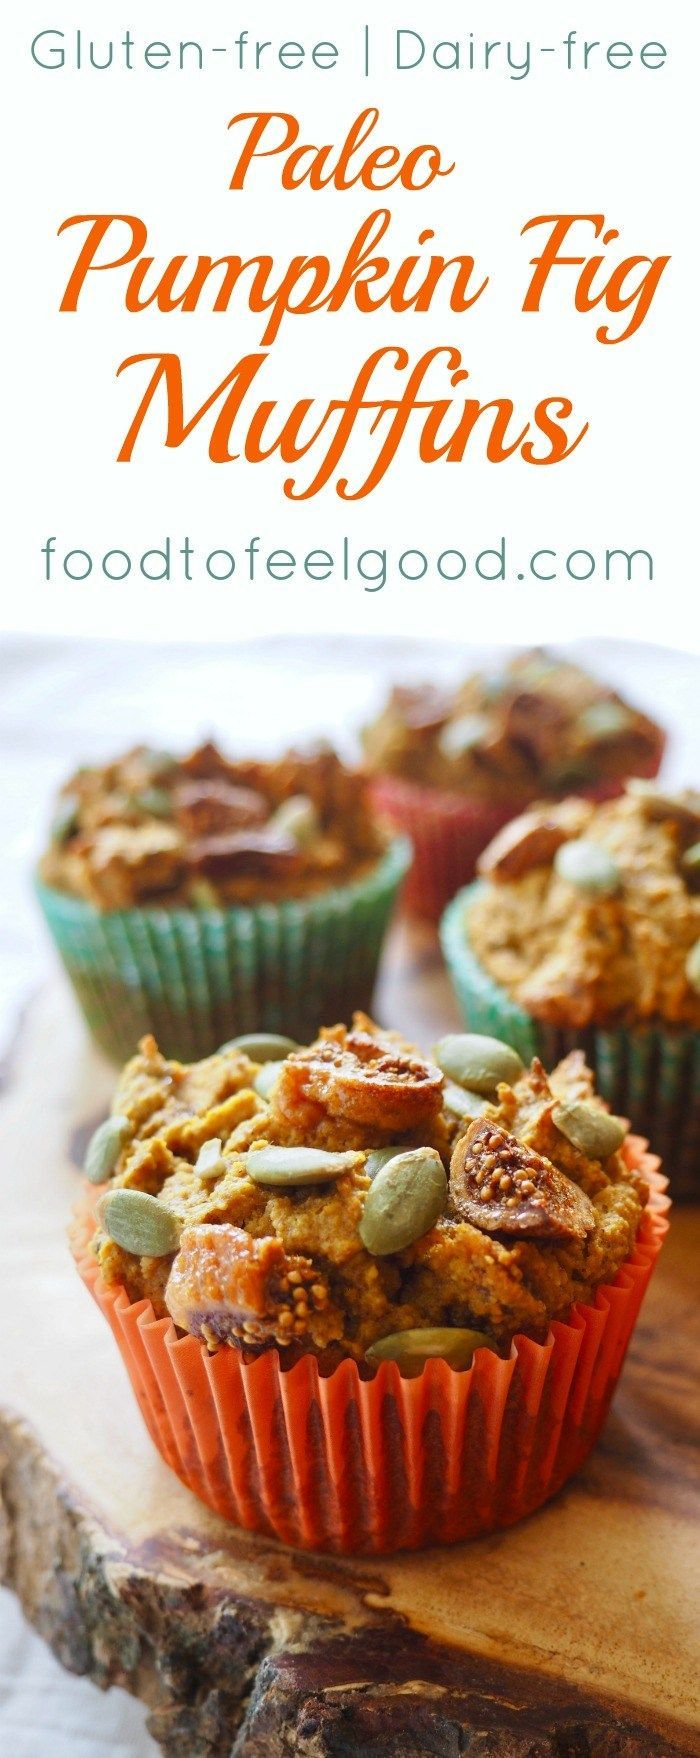 Paleo Pumpkin Fig Muffins | these are super fluffy and delicious, just lightly sweetened and full of warming spices